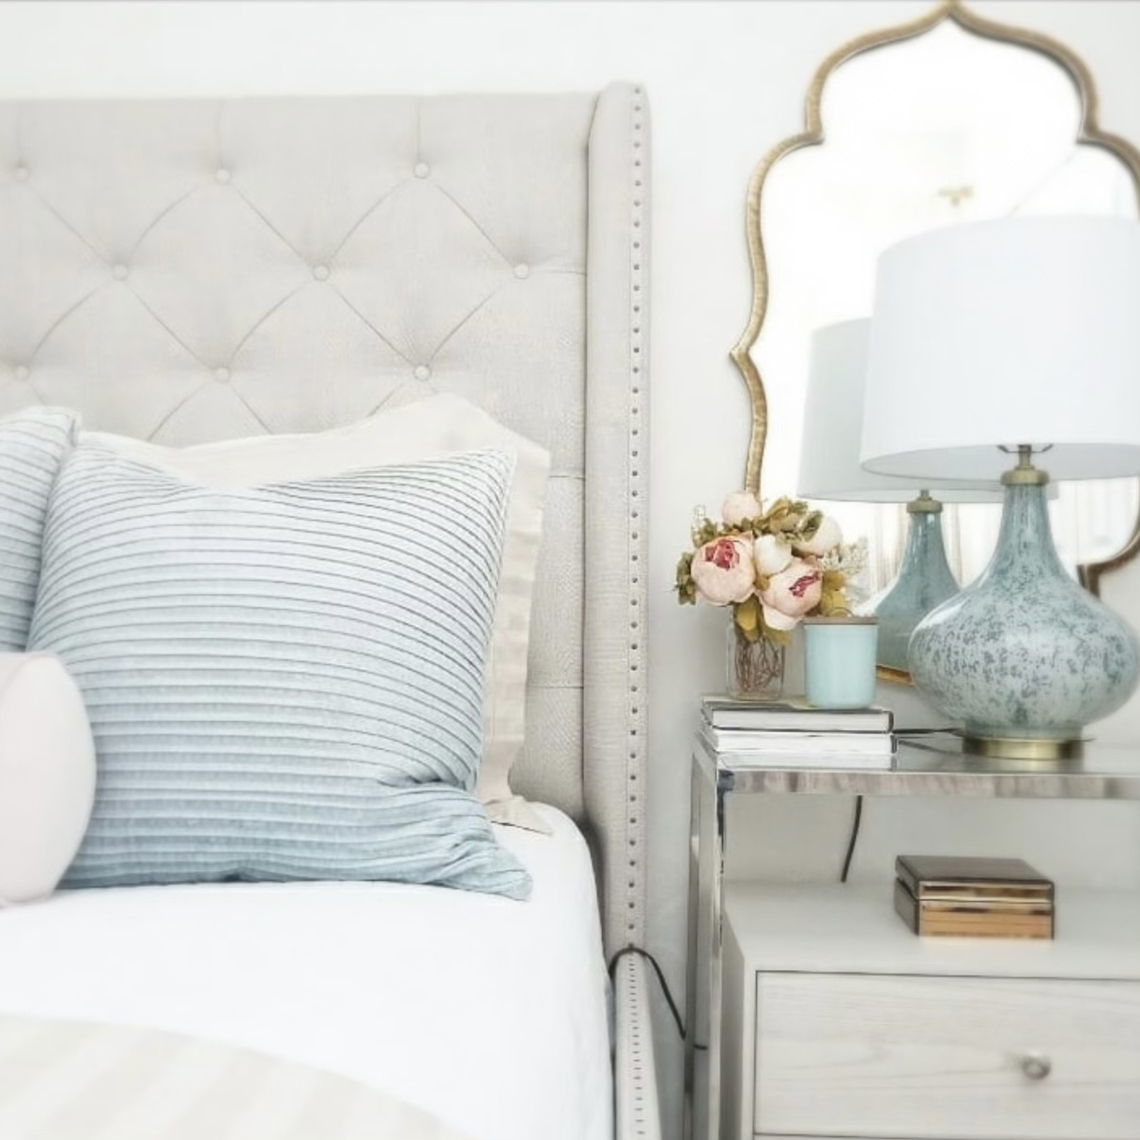 closeup of bedrooms design with light colors and mirror behind a lamp to make it appear larger